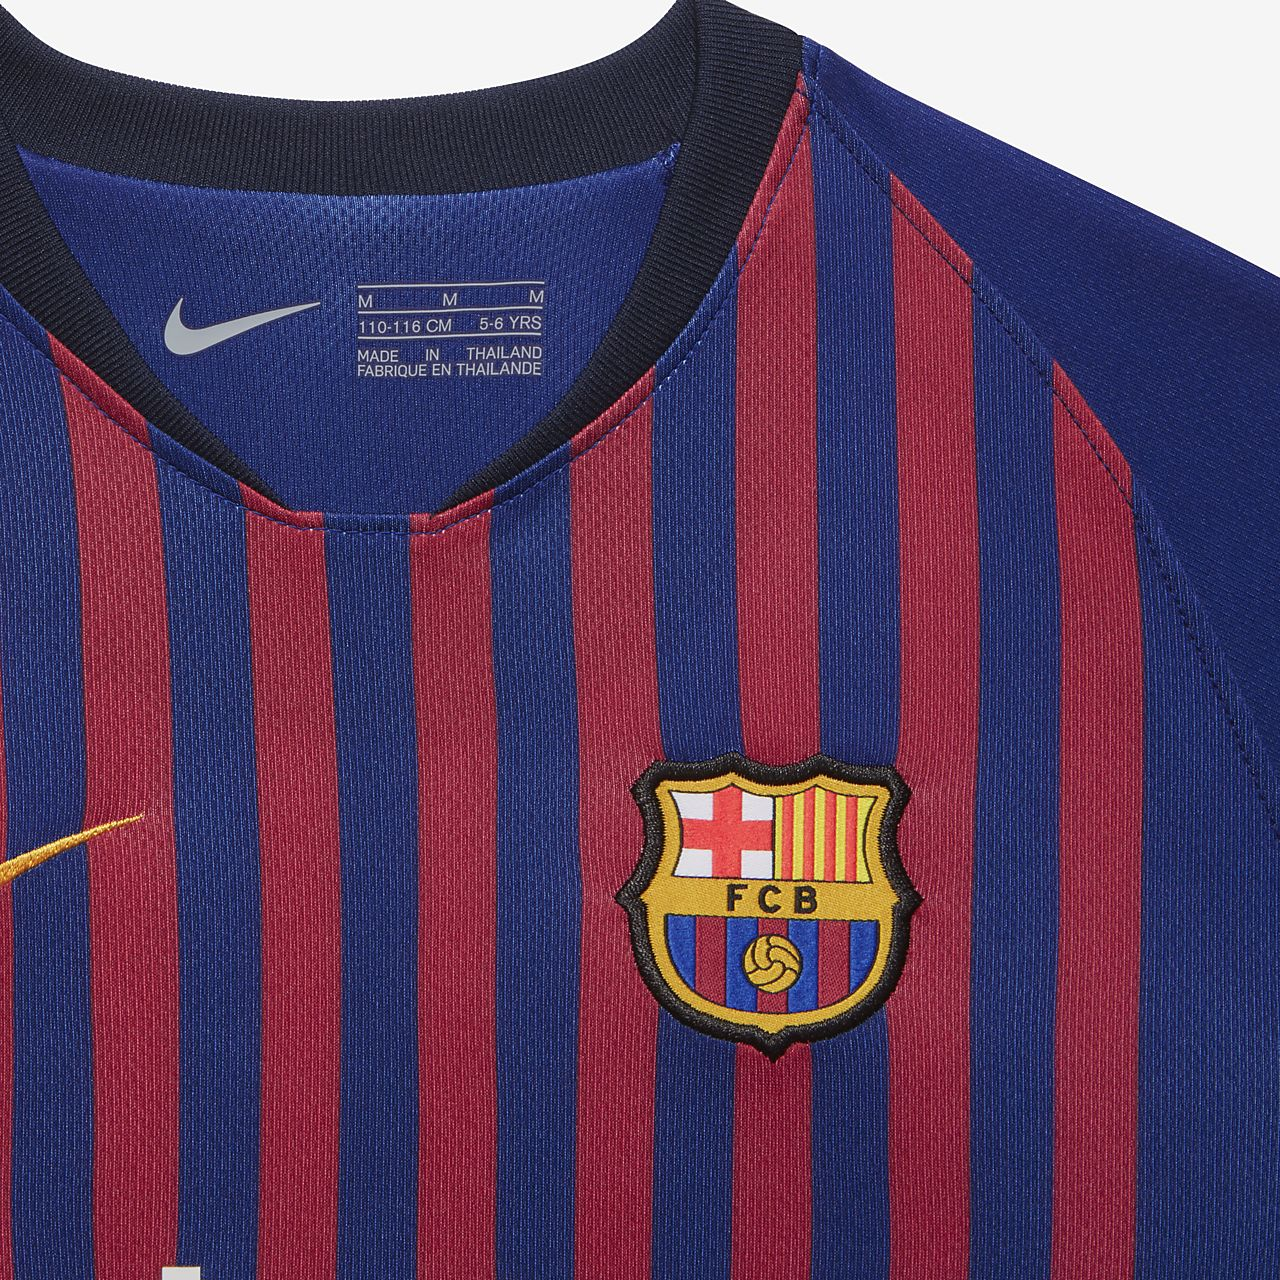 4a6fe621895 2018/19 FC Barcelona Stadium Home Younger Kids' Football Kit. Nike ...